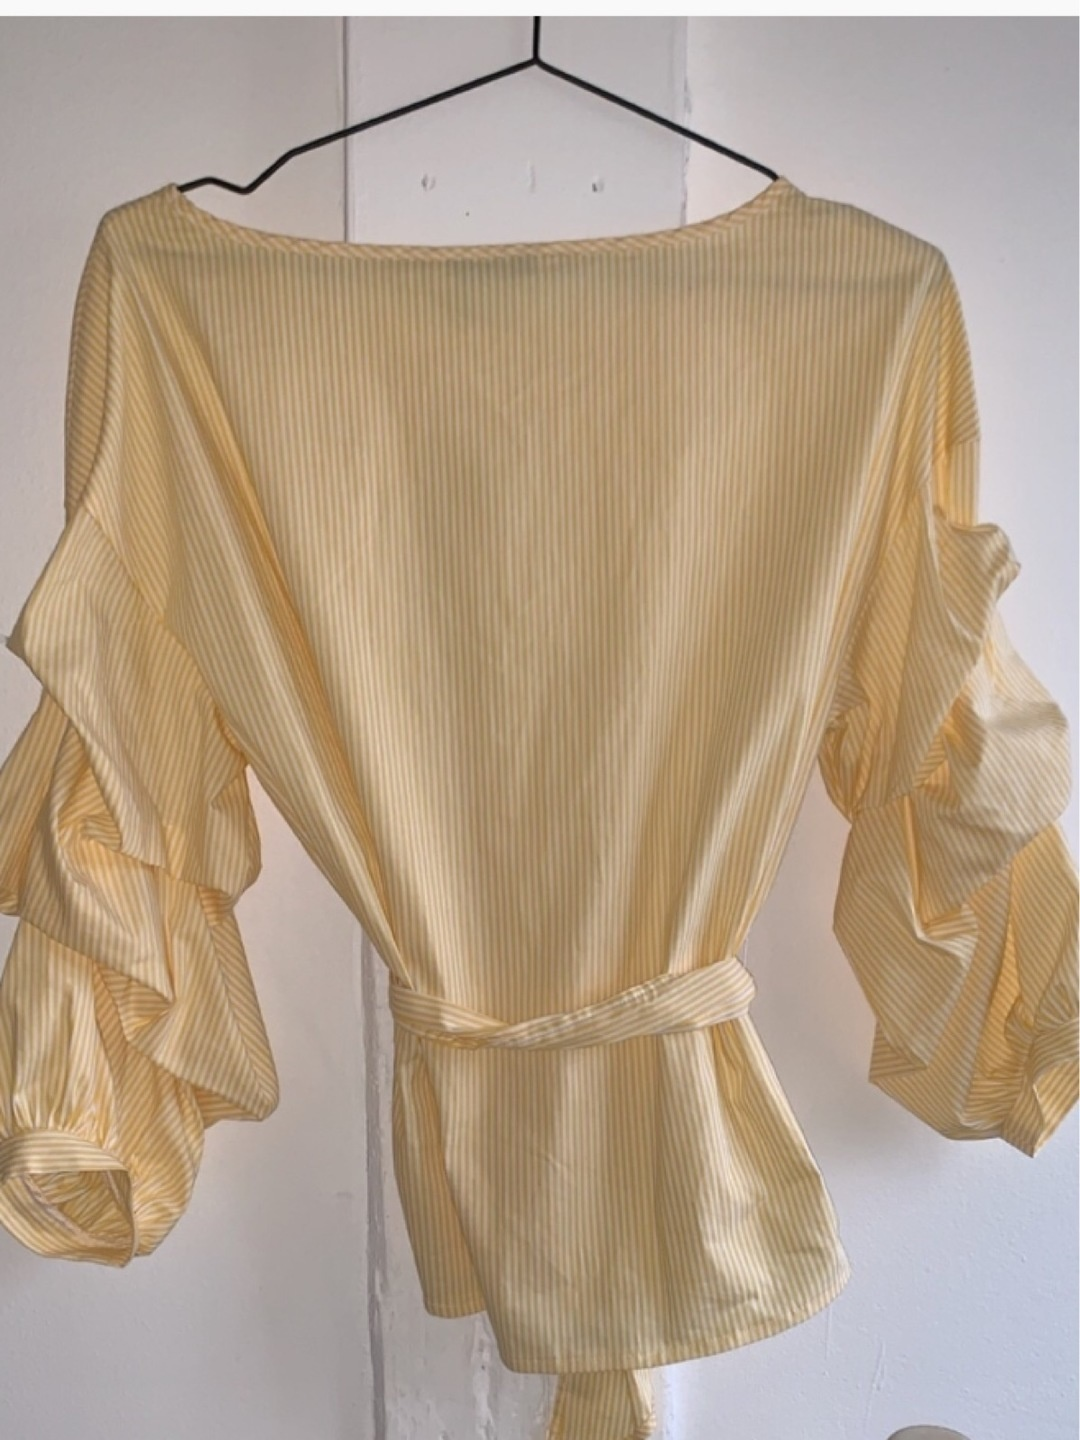 Women's blouses & shirts - ONLY photo 3